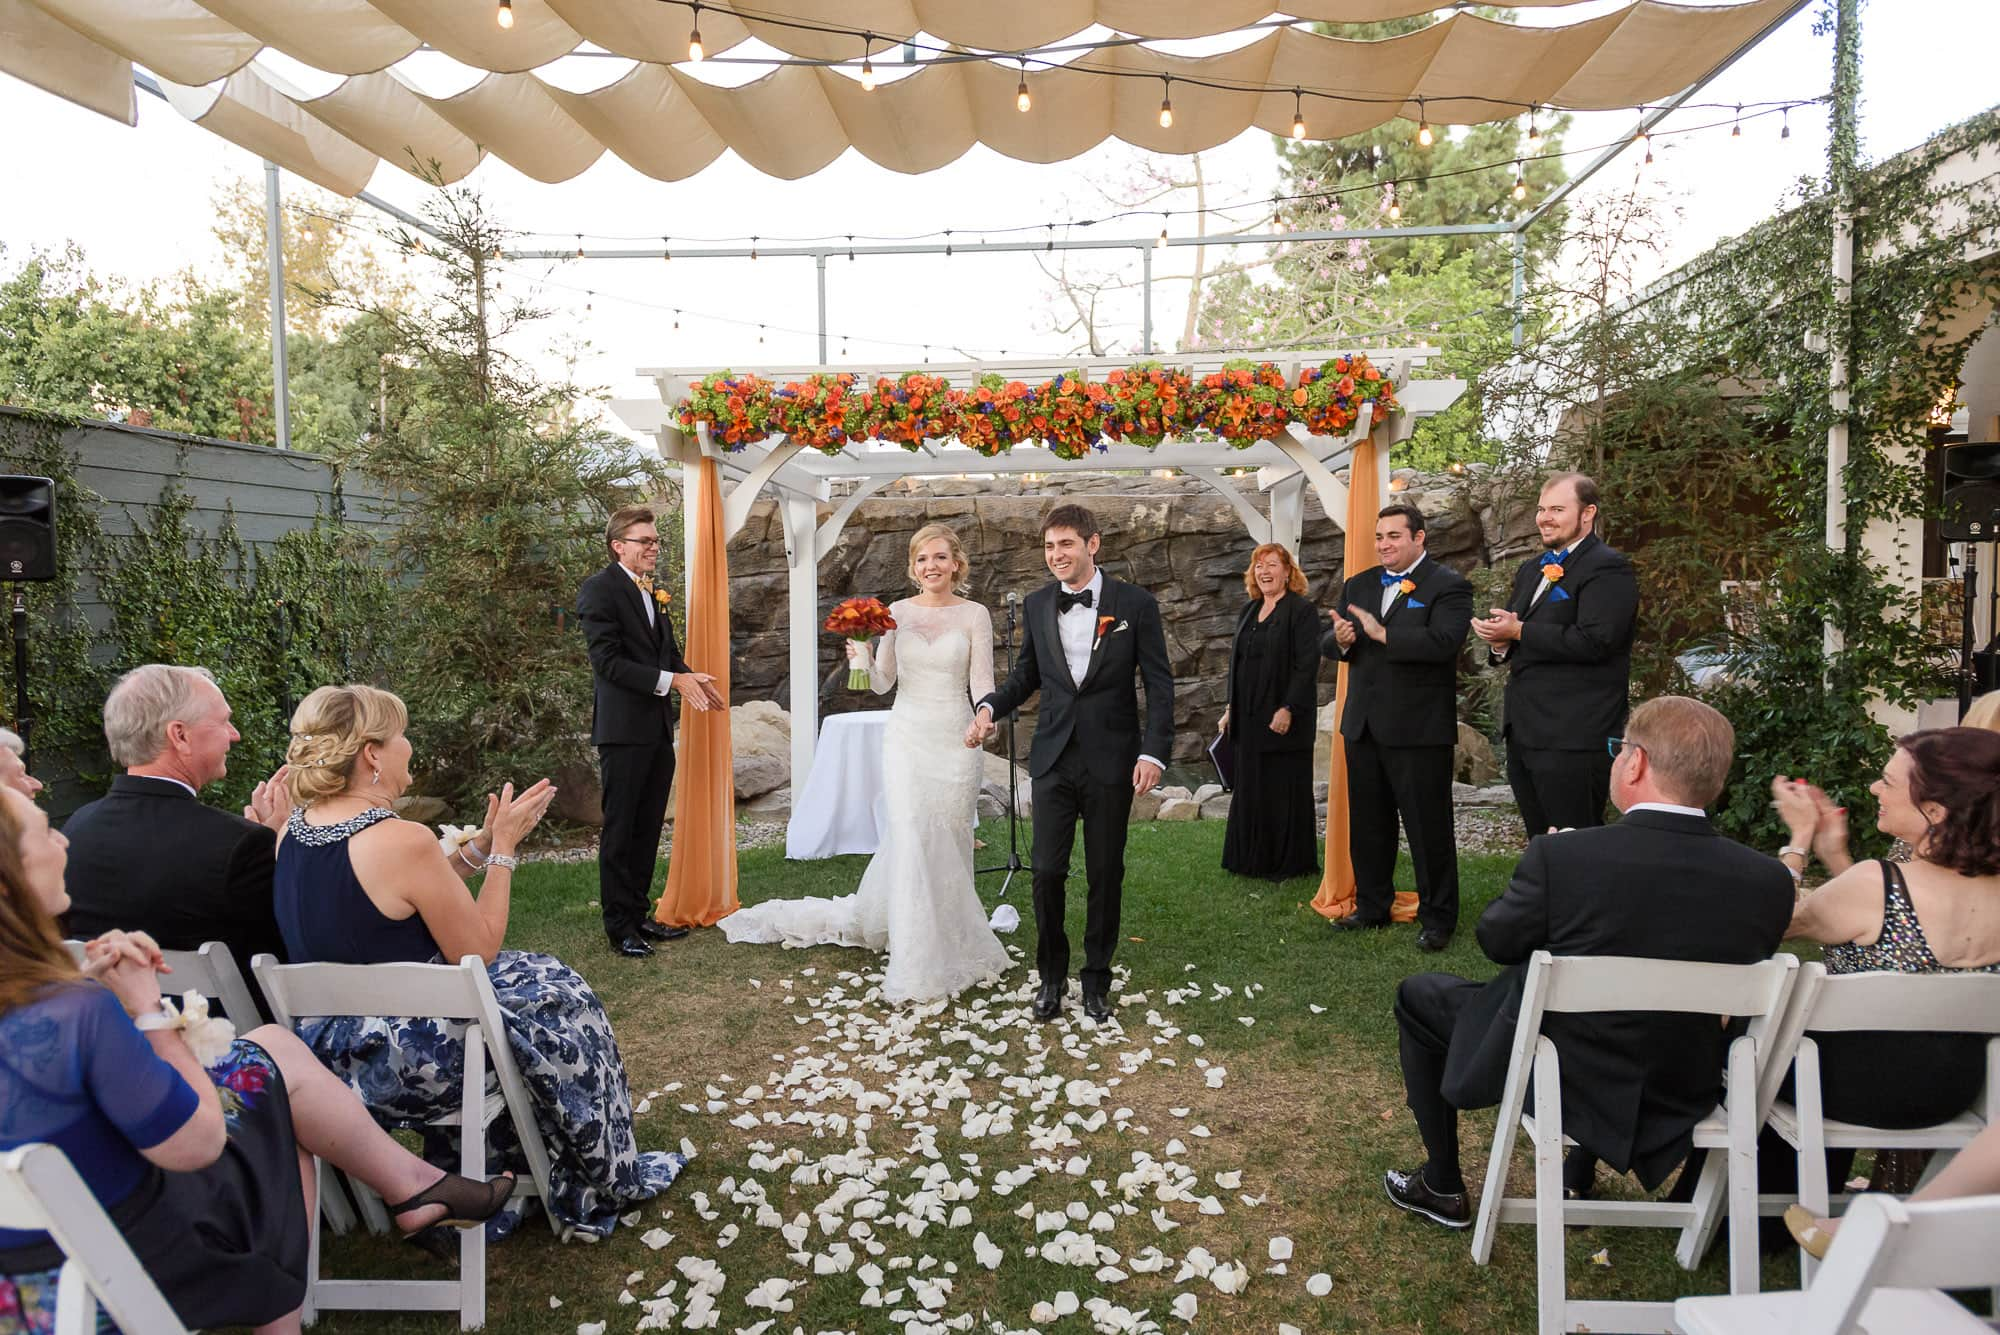 059_Alan_and_Heidi_Los_Angeles_Equestrian_Center_Wedding